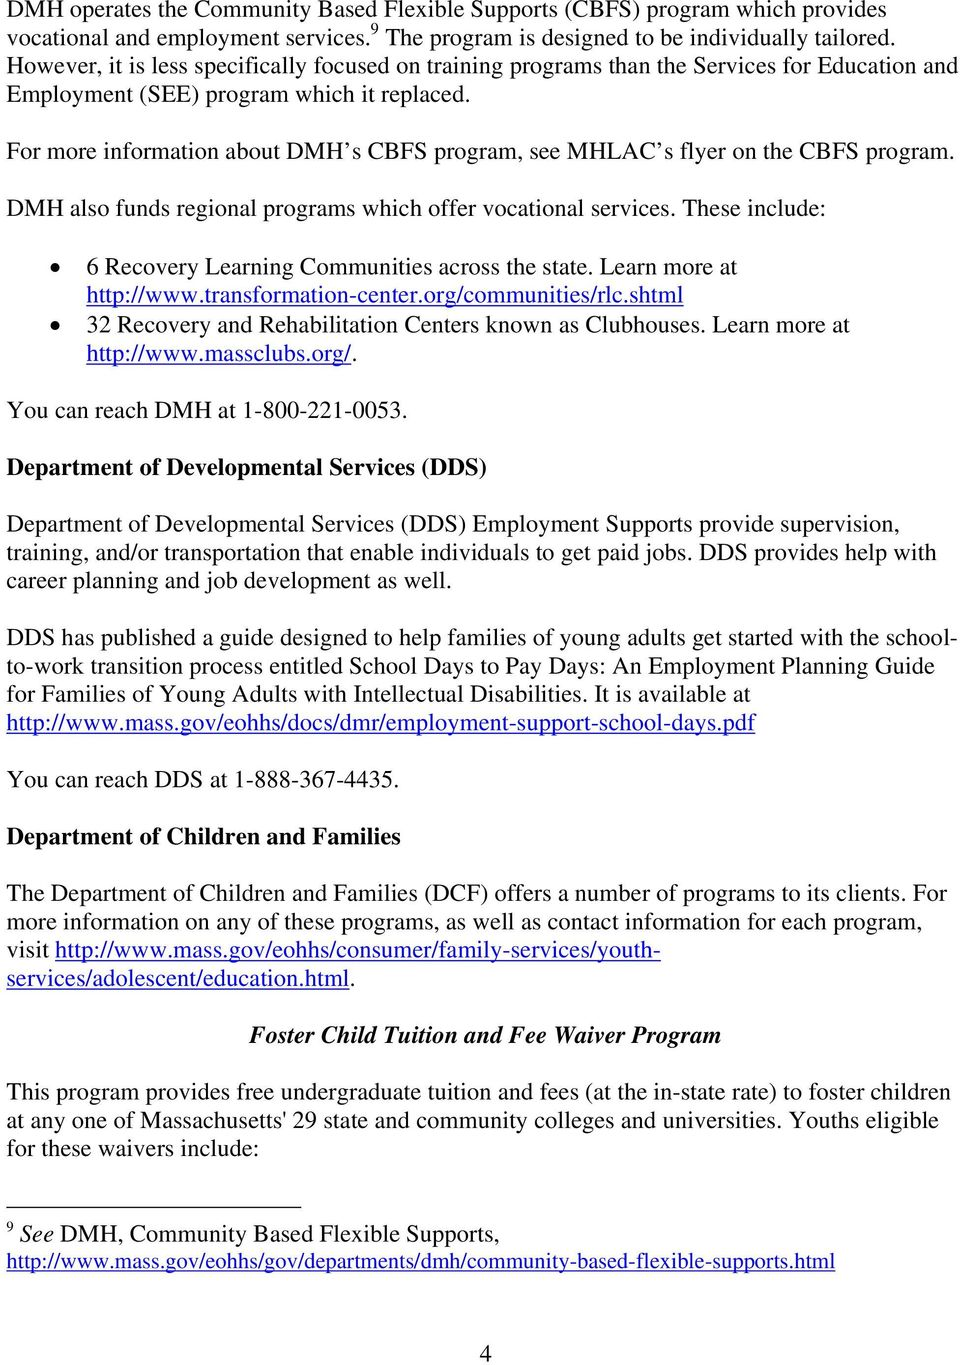 For more information about DMH s CBFS program, see MHLAC s flyer on the CBFS program. DMH also funds regional programs which offer vocational services.